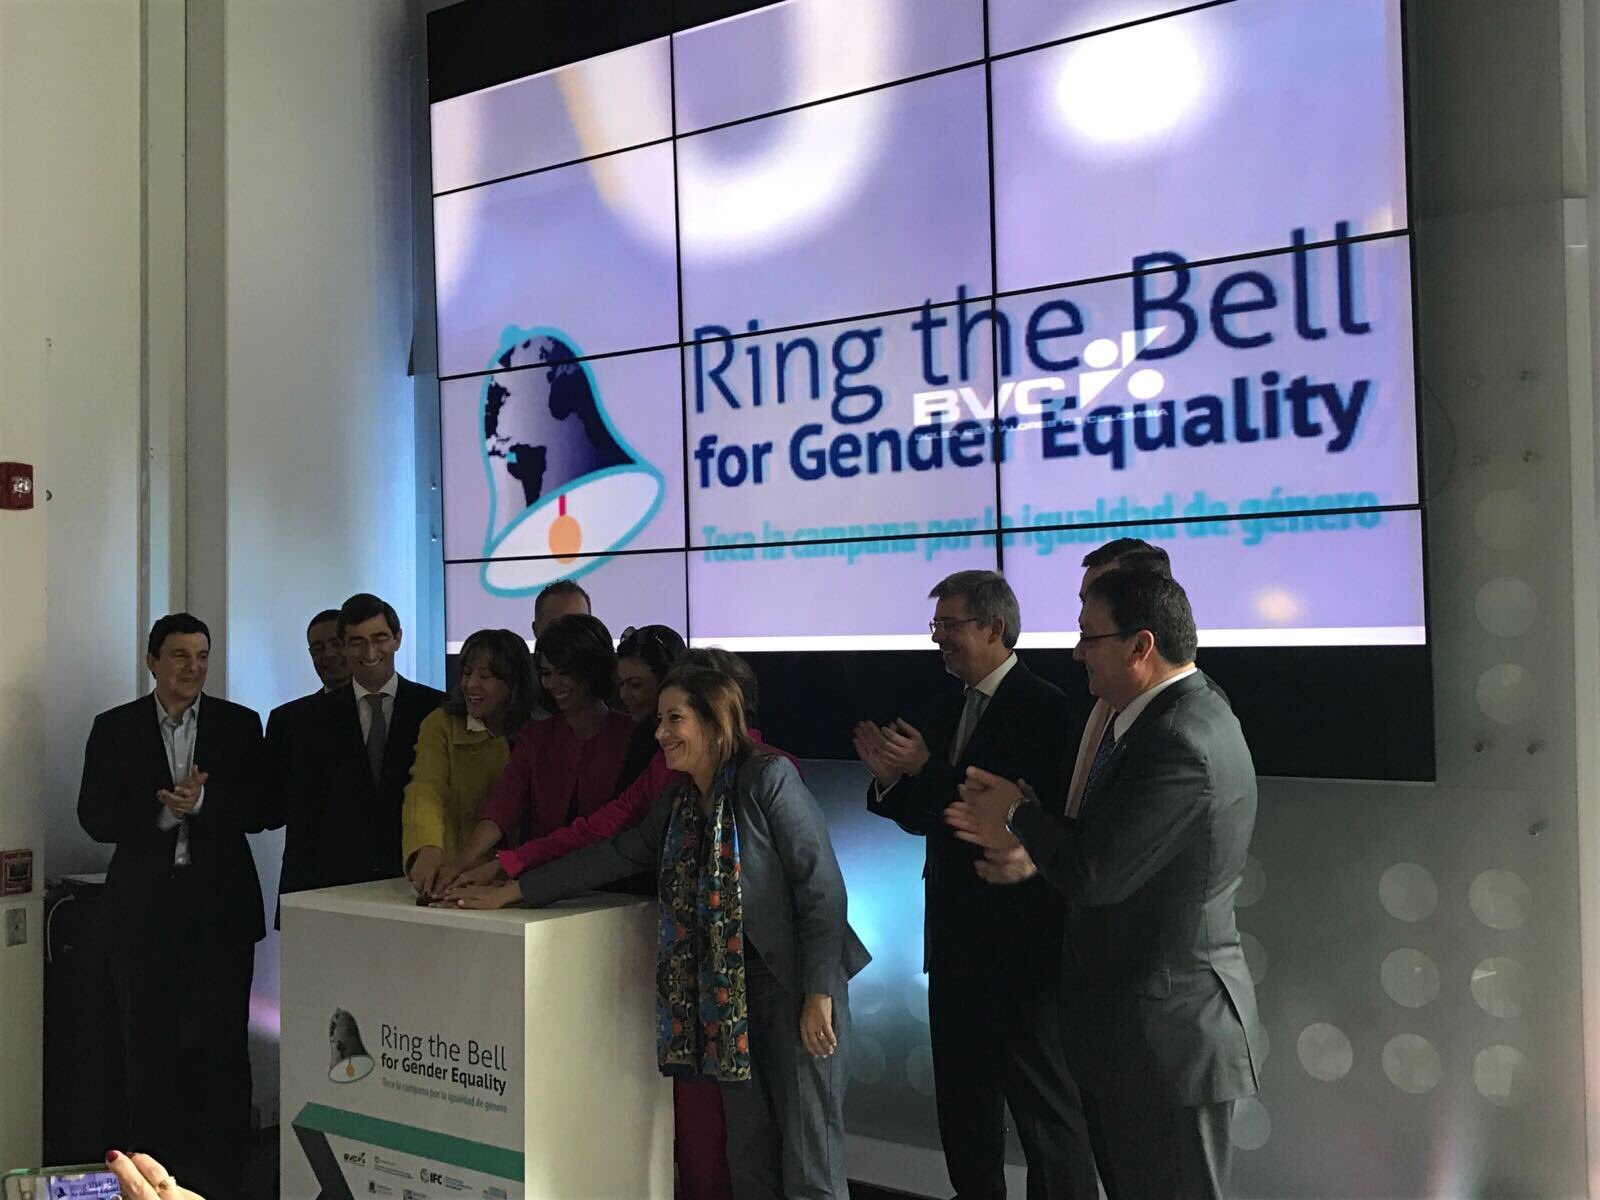 Congratulations @BVCColombia @IFC_LAC & SECO 🇨🇭 for a successful #genderbell Colombia 🇨🇴 - #CorpGov #IWD2017 #GobCorp #RingtheBell https://t.co/lBgyw4e7Ed